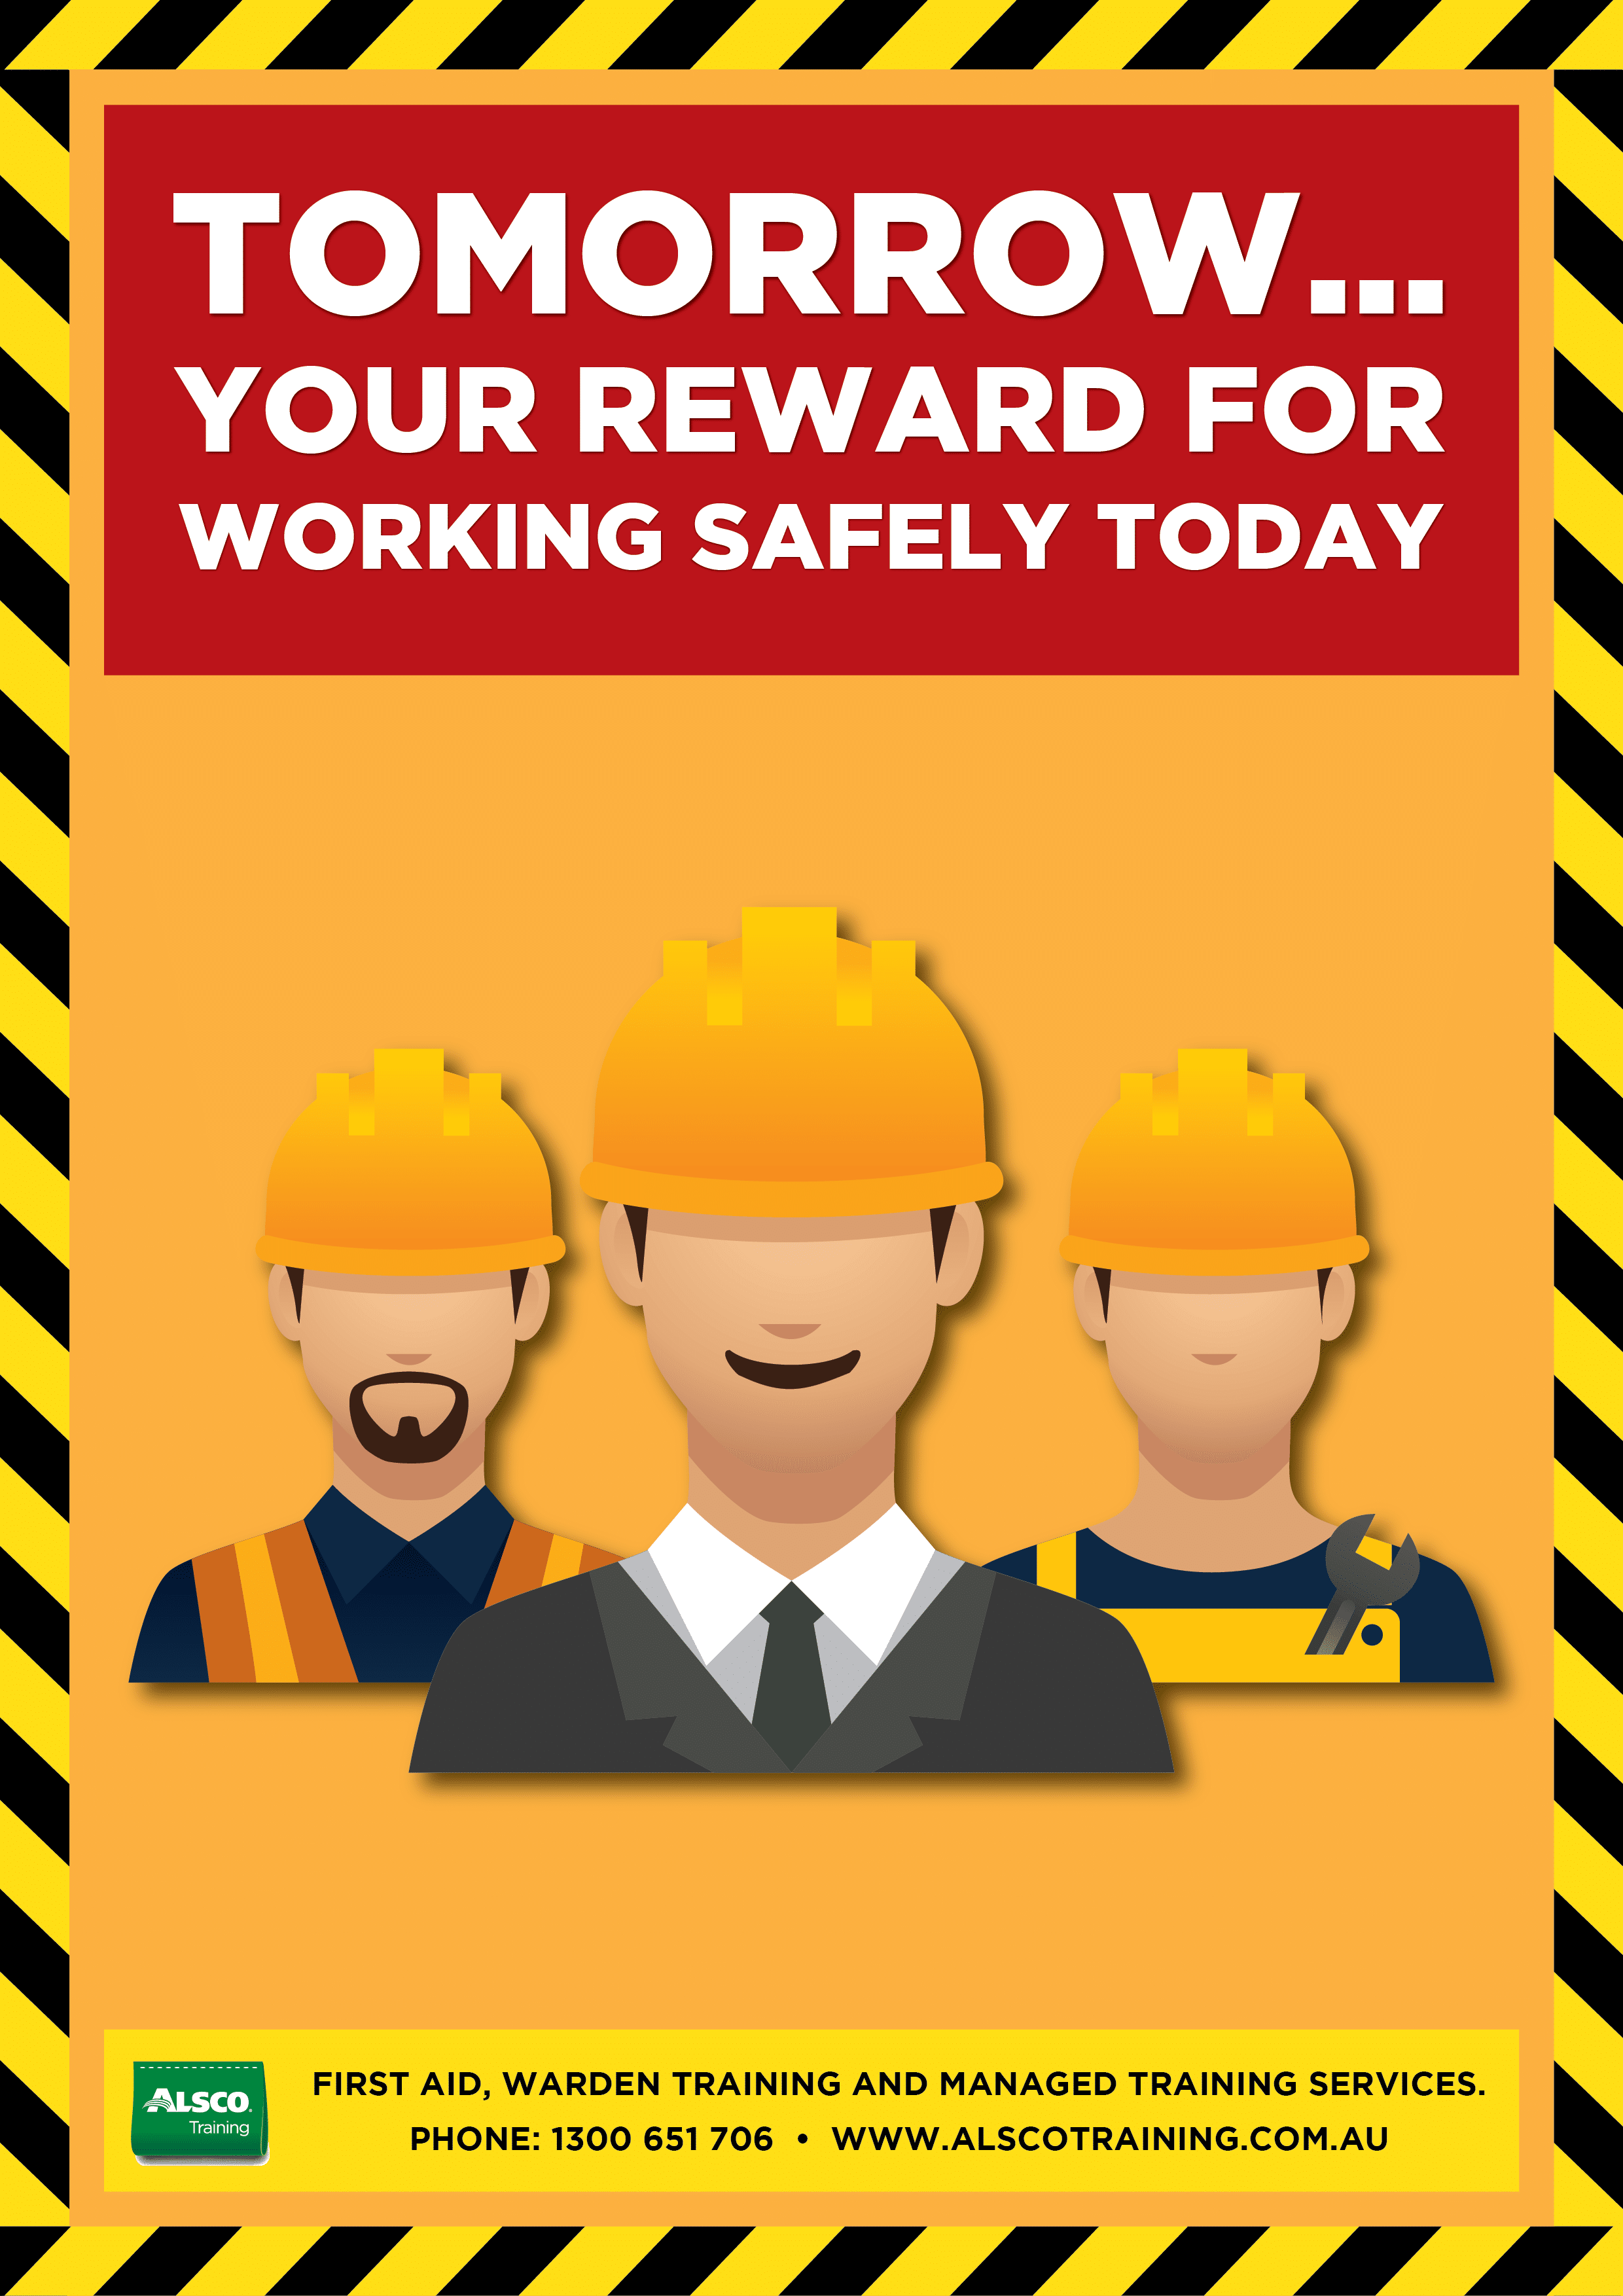 Tomorrow... Your reward for working safely today.